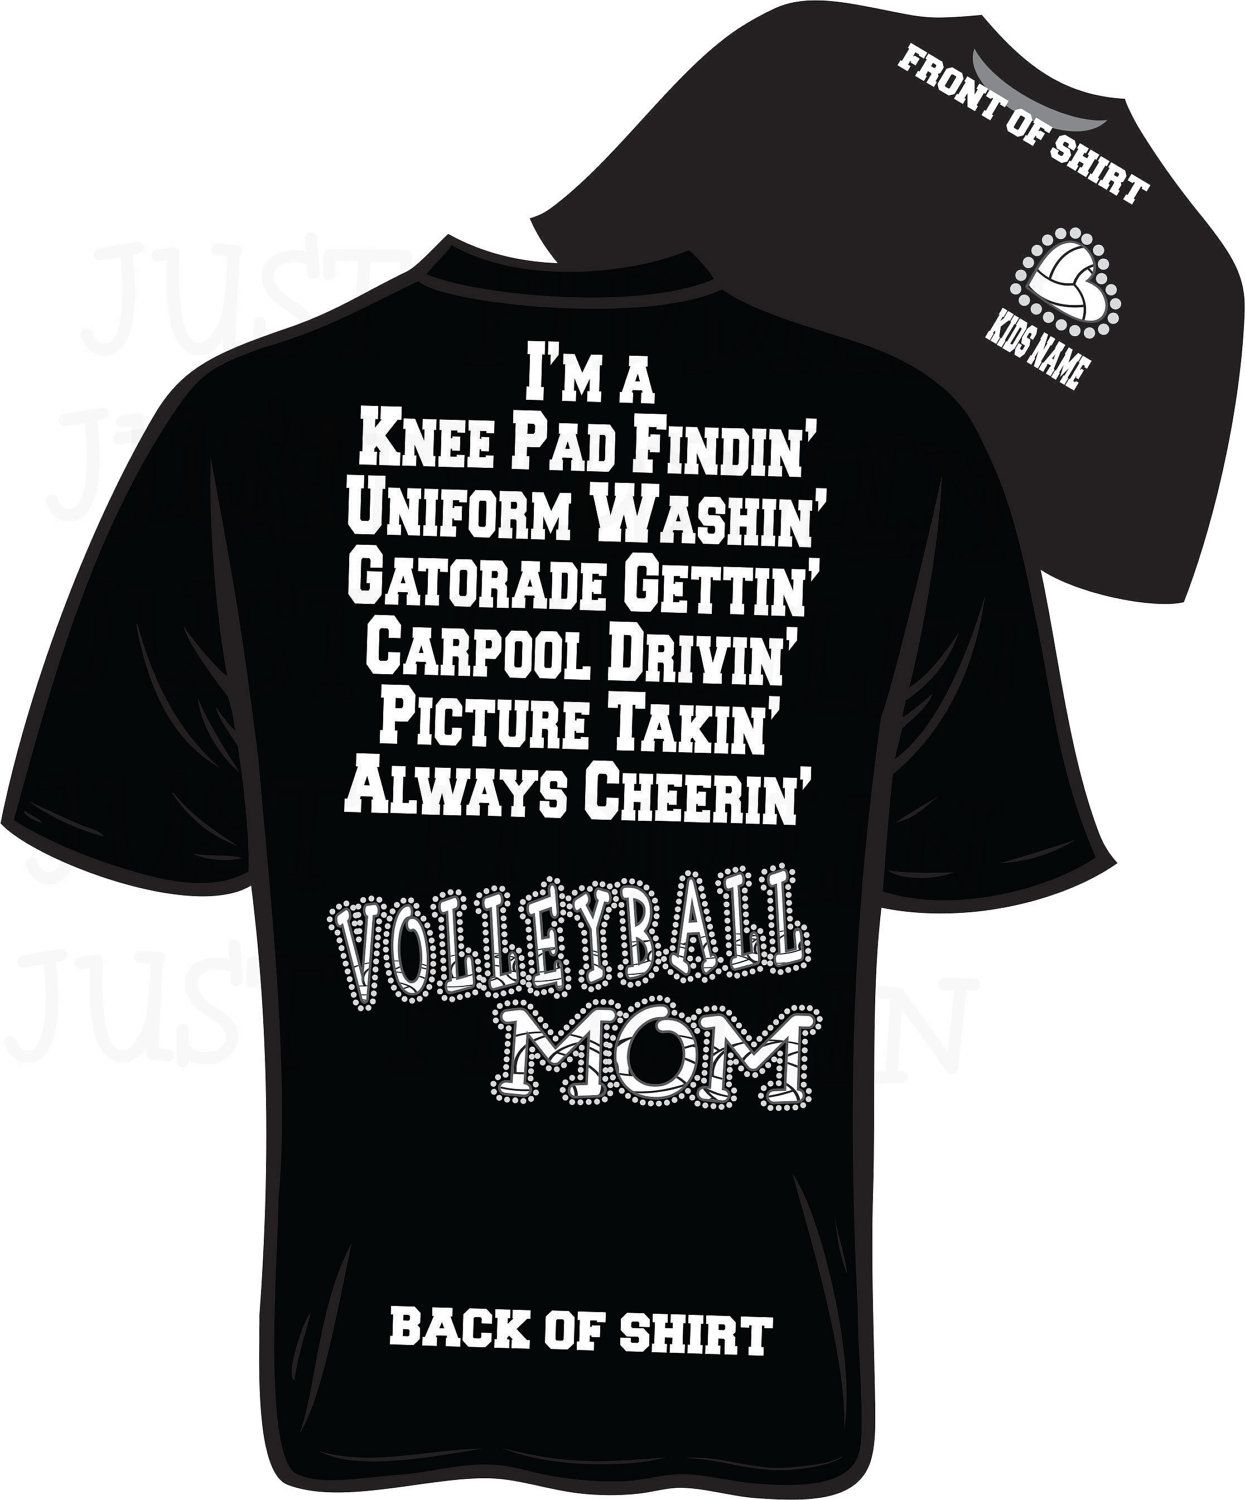 T shirt design volleyball - Volleyball Mom Bling T Shirt Please See Description Before Ordering 27 95 Via Etsy